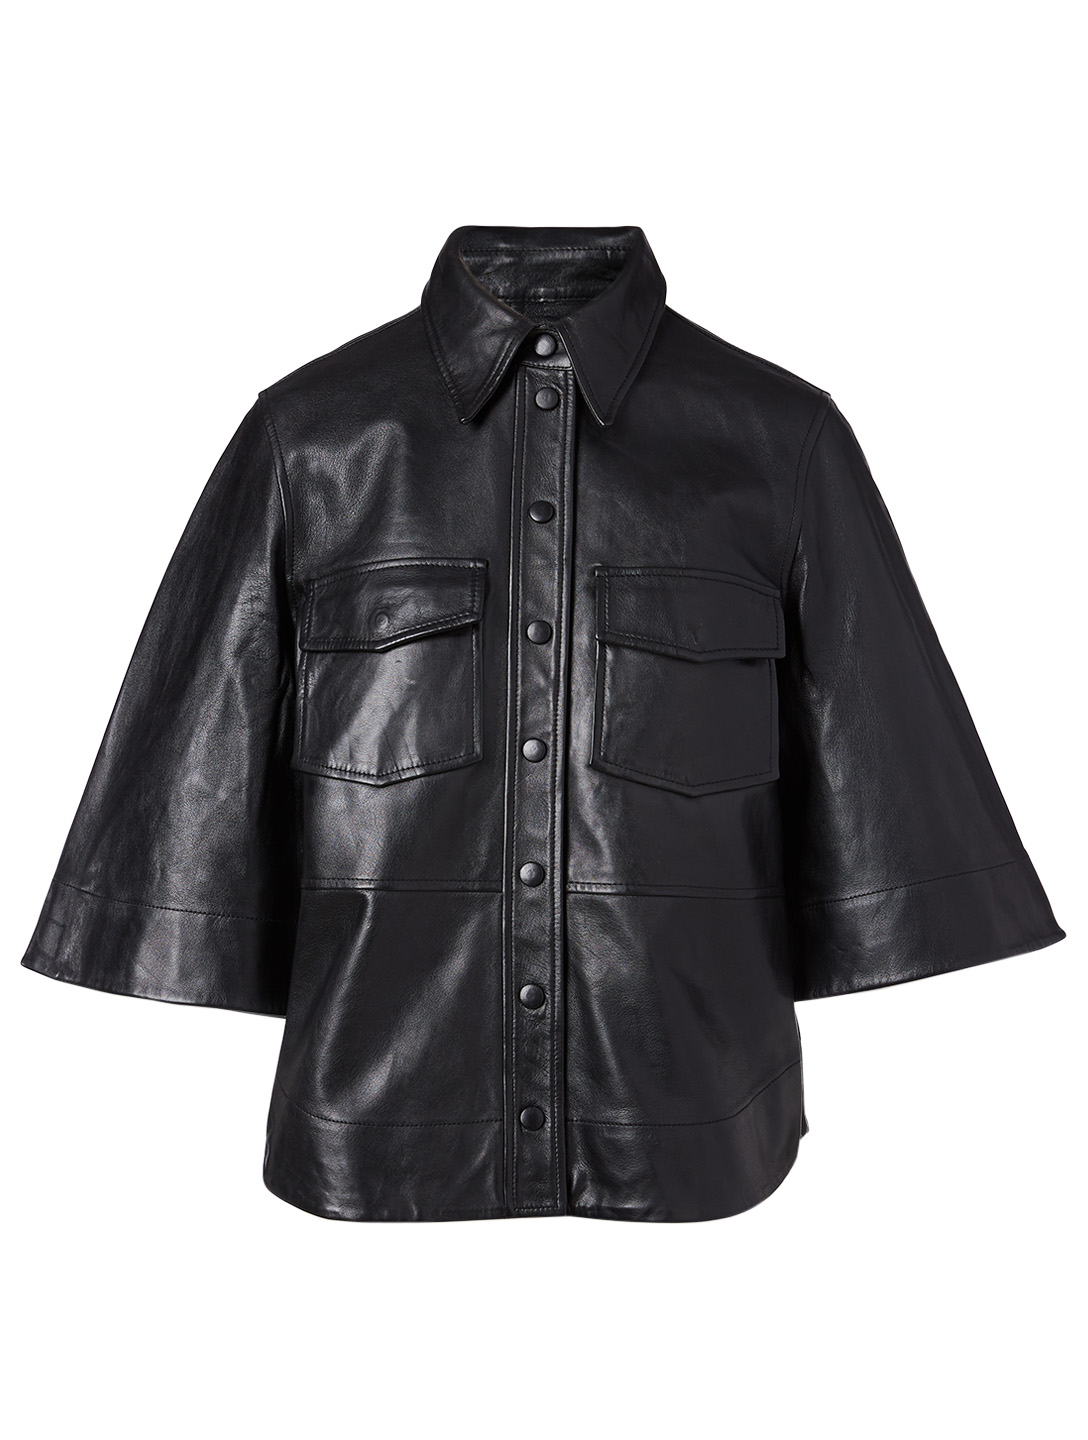 GANNI Leather Buttoned Blouse Women's Black